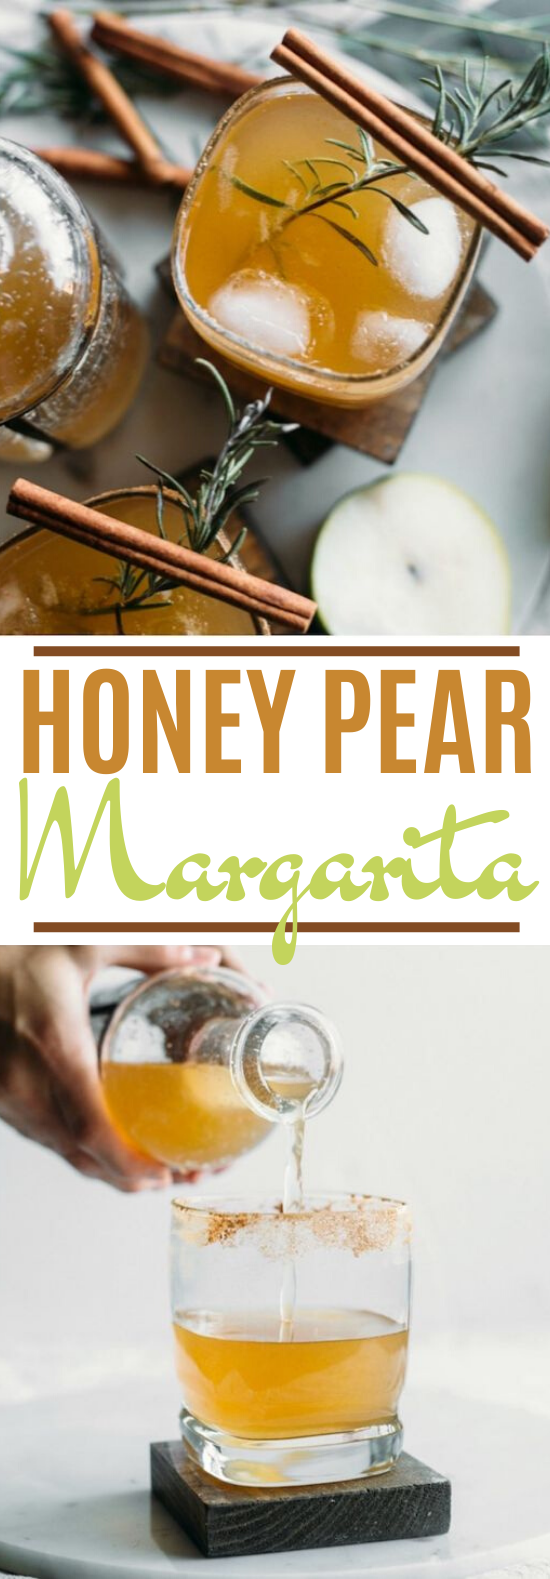 Honey Pear Margarita #drinks #alcohol #cocktails #fall #beverages